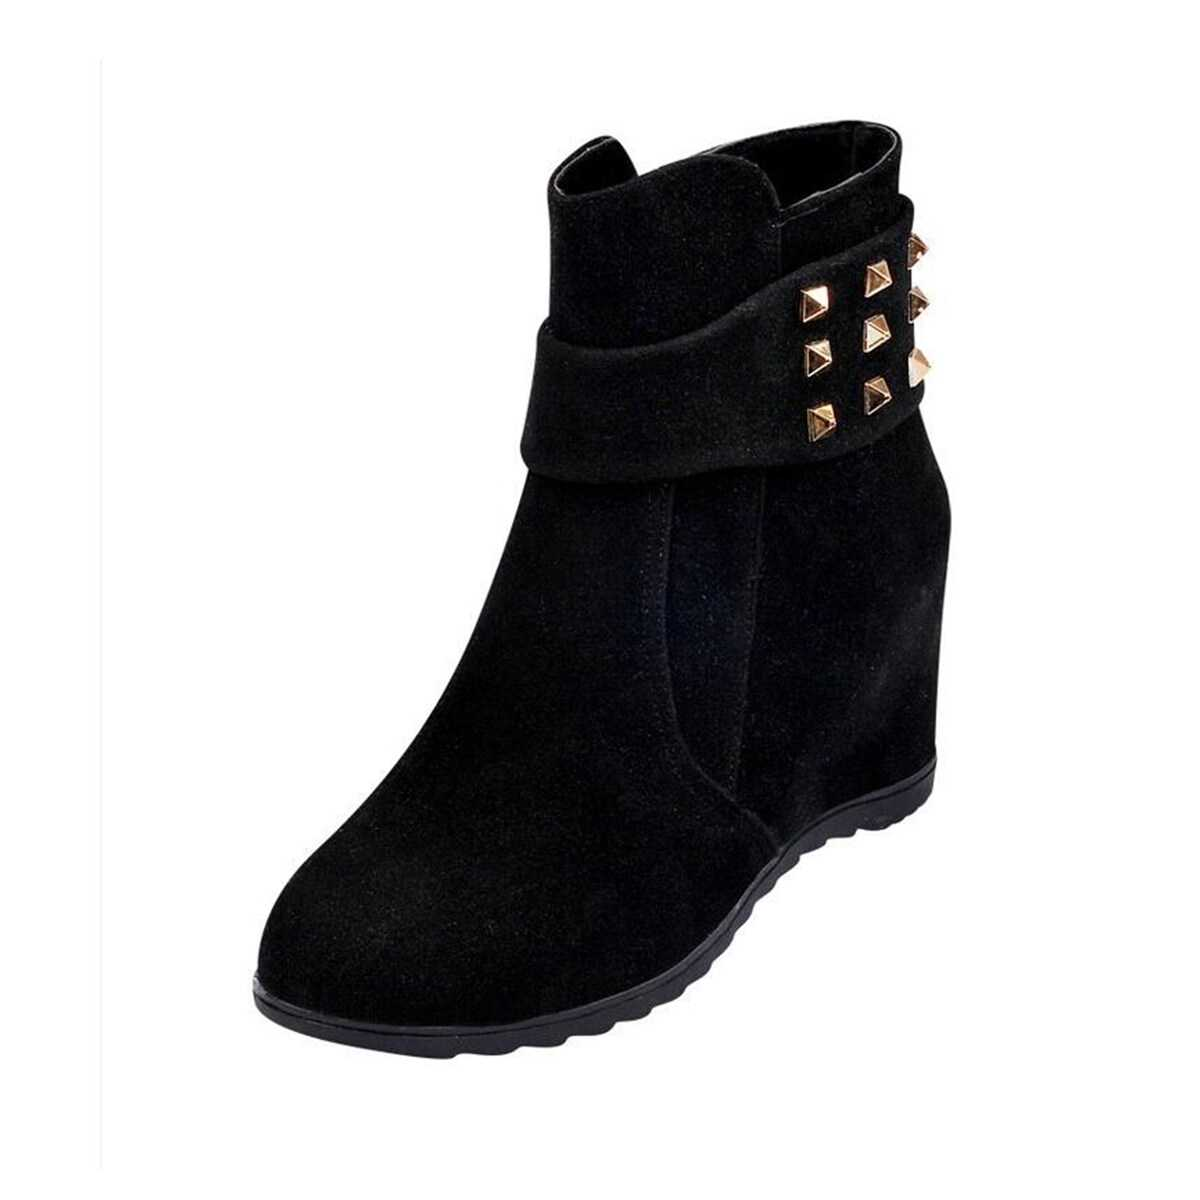 Studded Decor Suede Boots in Black by ROMWE on GOOFASH